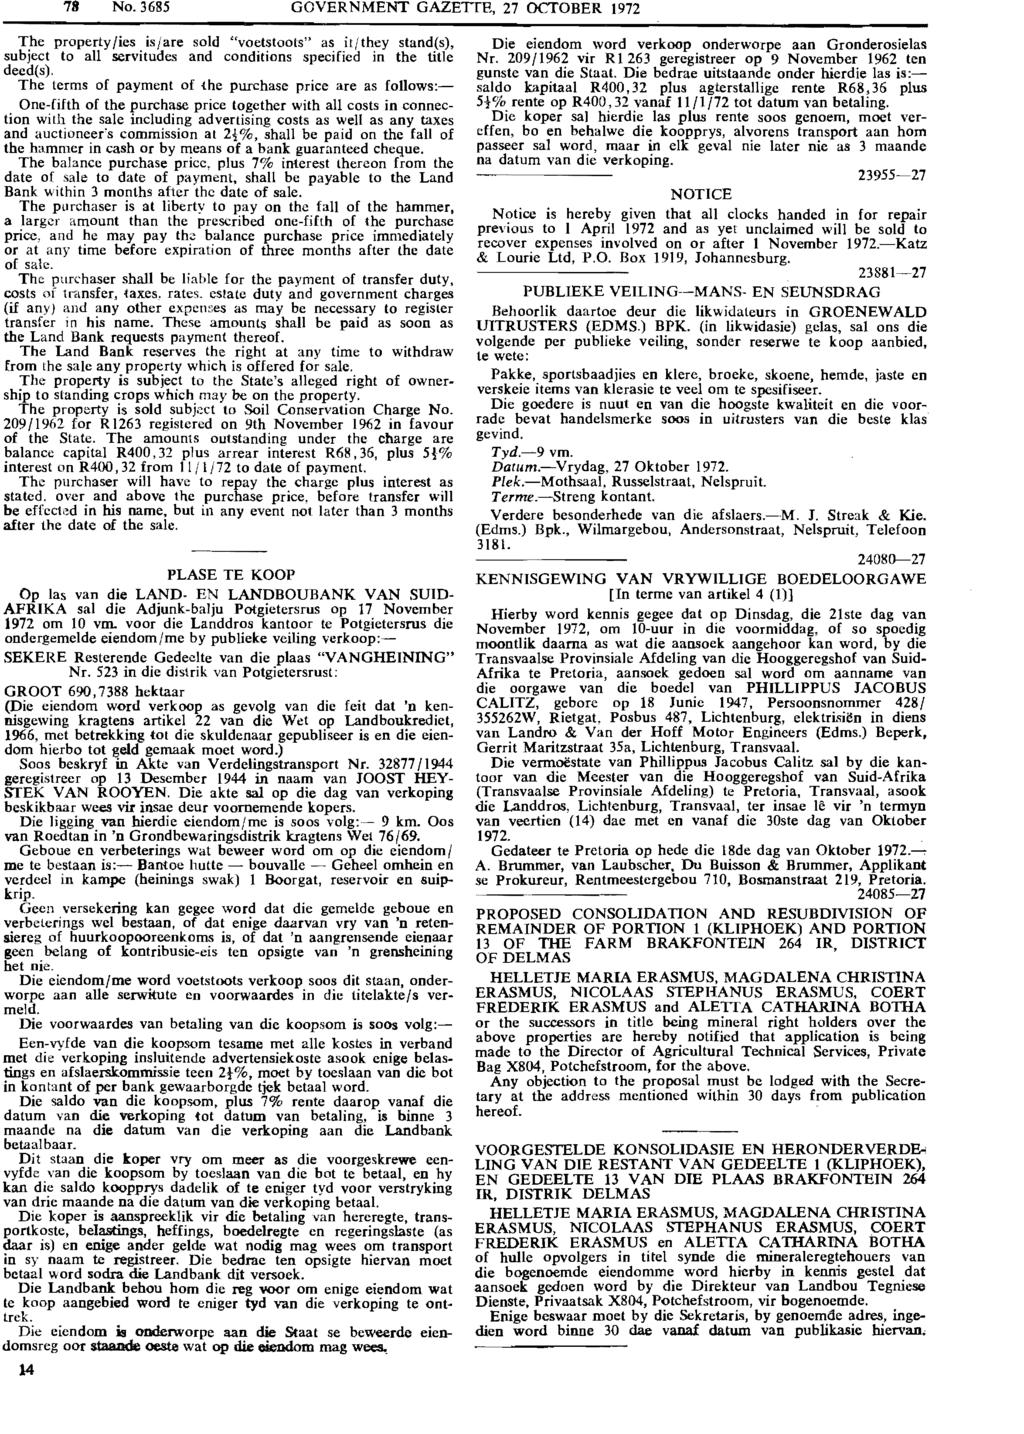 "78 No. 3685 GOVERNMENT GAZETTE, 27 OCTOBER 1972 T.he property lies is/are sold ""voetstoots"" as it/they stand(s), subject to all servitudes and conditions specified in the title deed(s)."